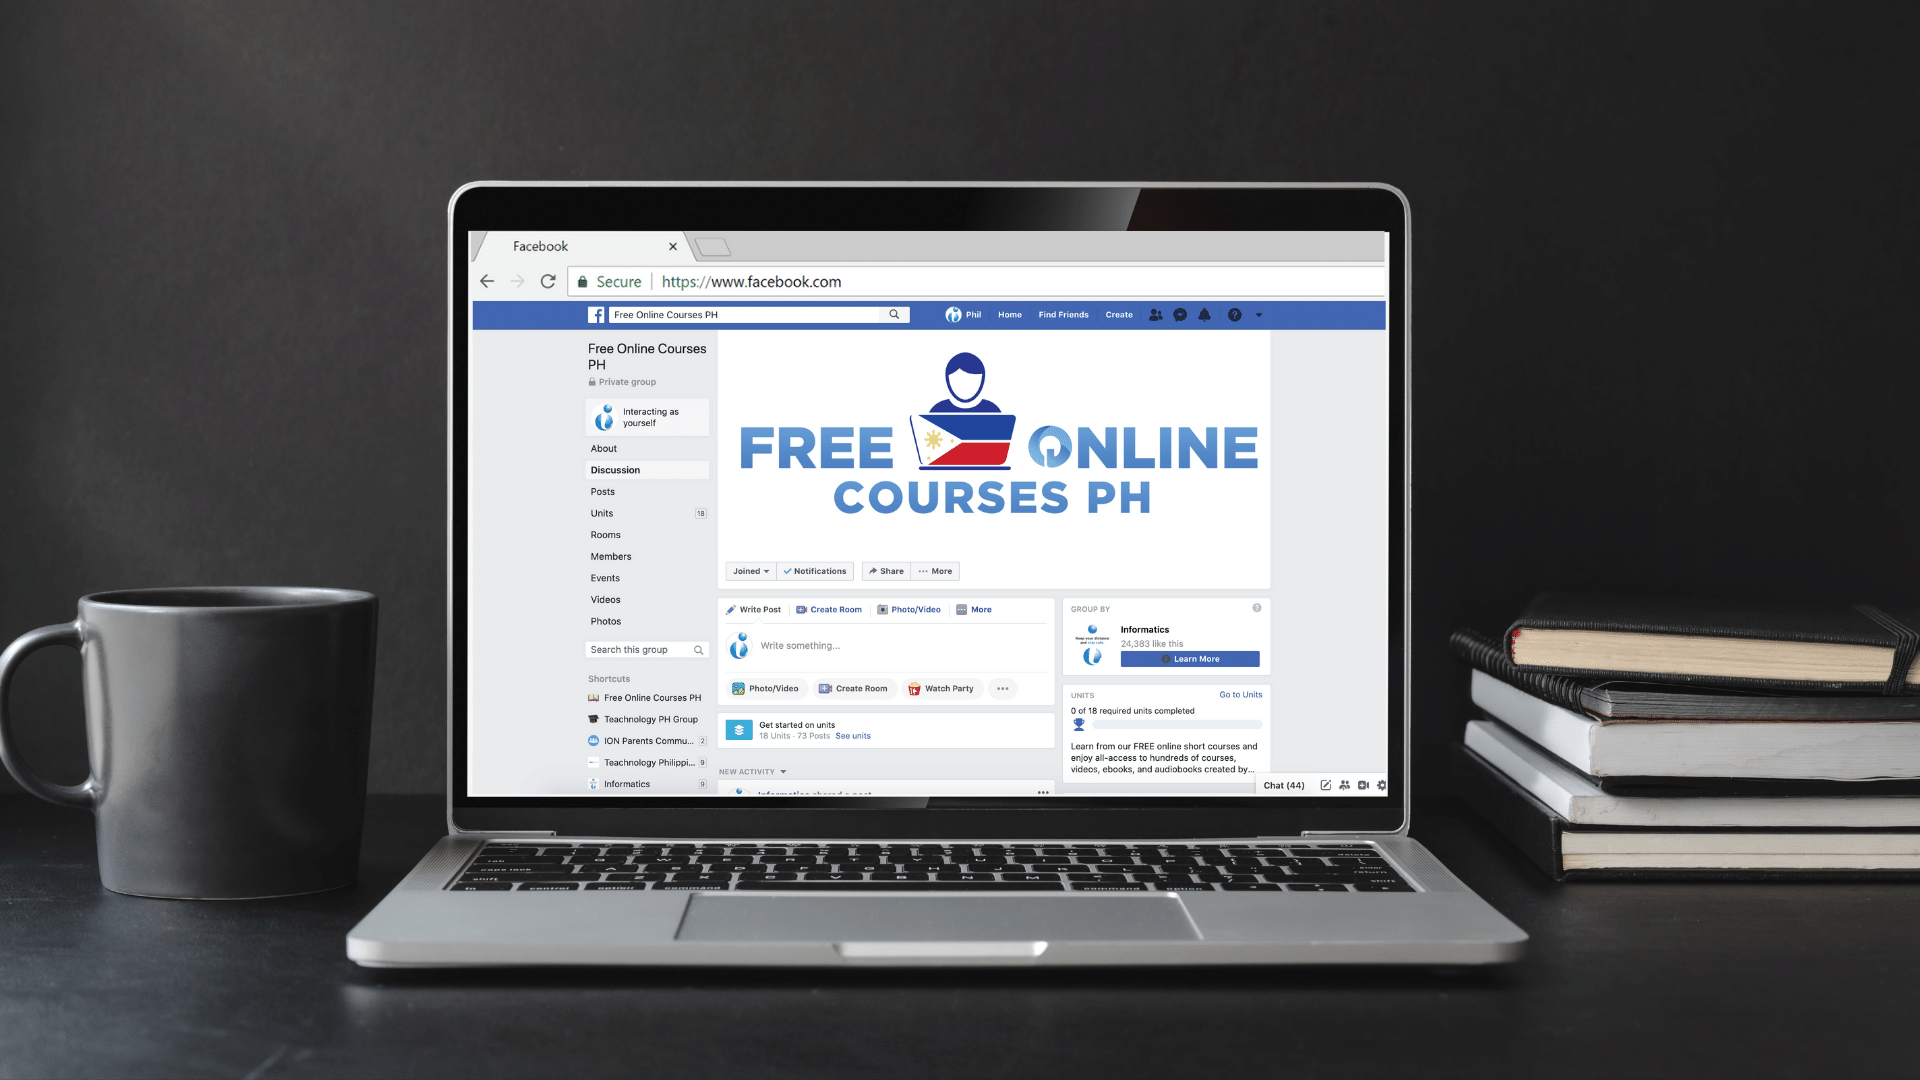 Facebook Group provides Free Online Courses that Filipinos Need in the New Normal